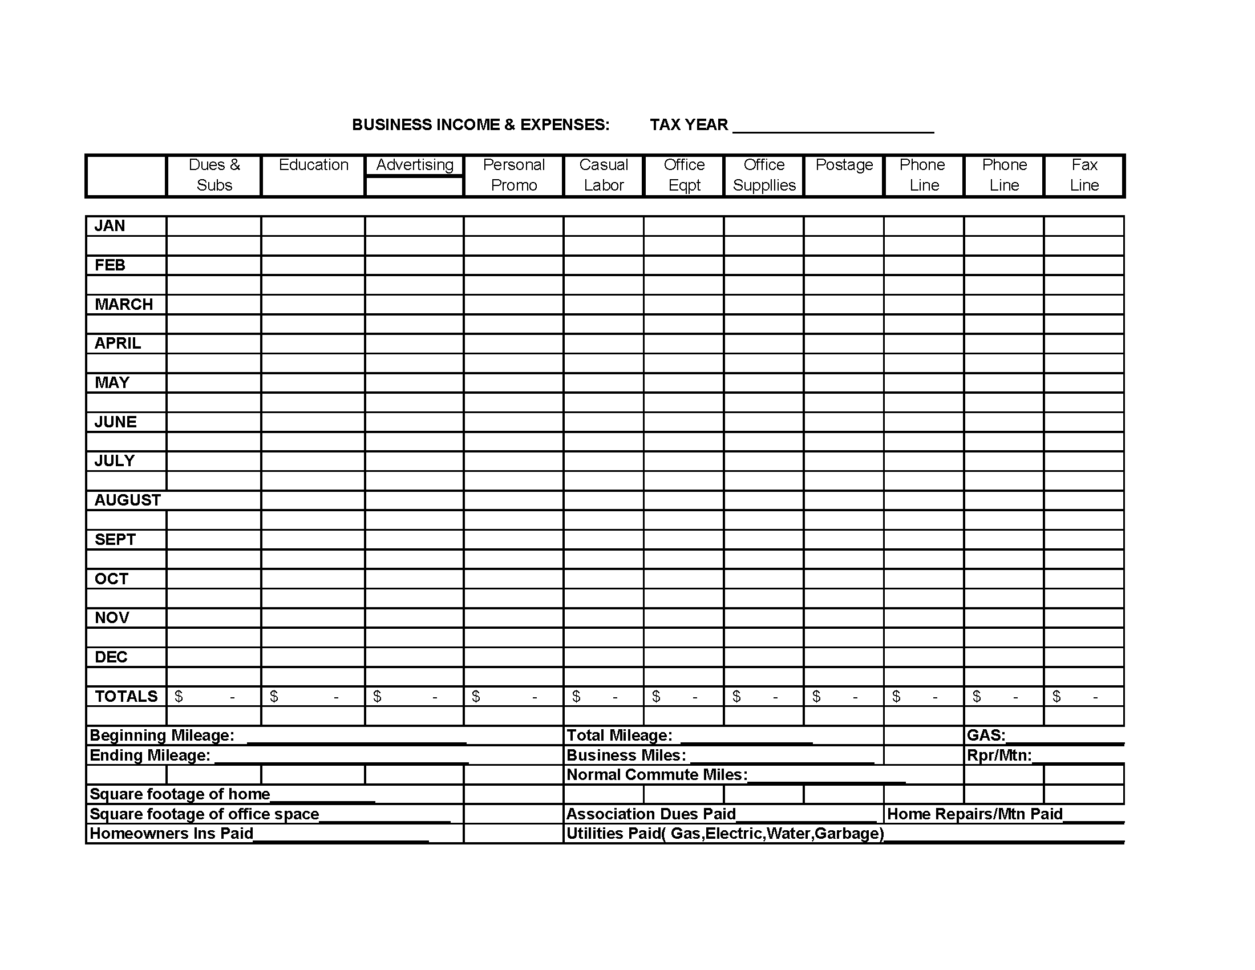 Landlord Spreadsheet Template Free In Landlord Spreadsheet Free And Rent Collection Spreadsheet Template